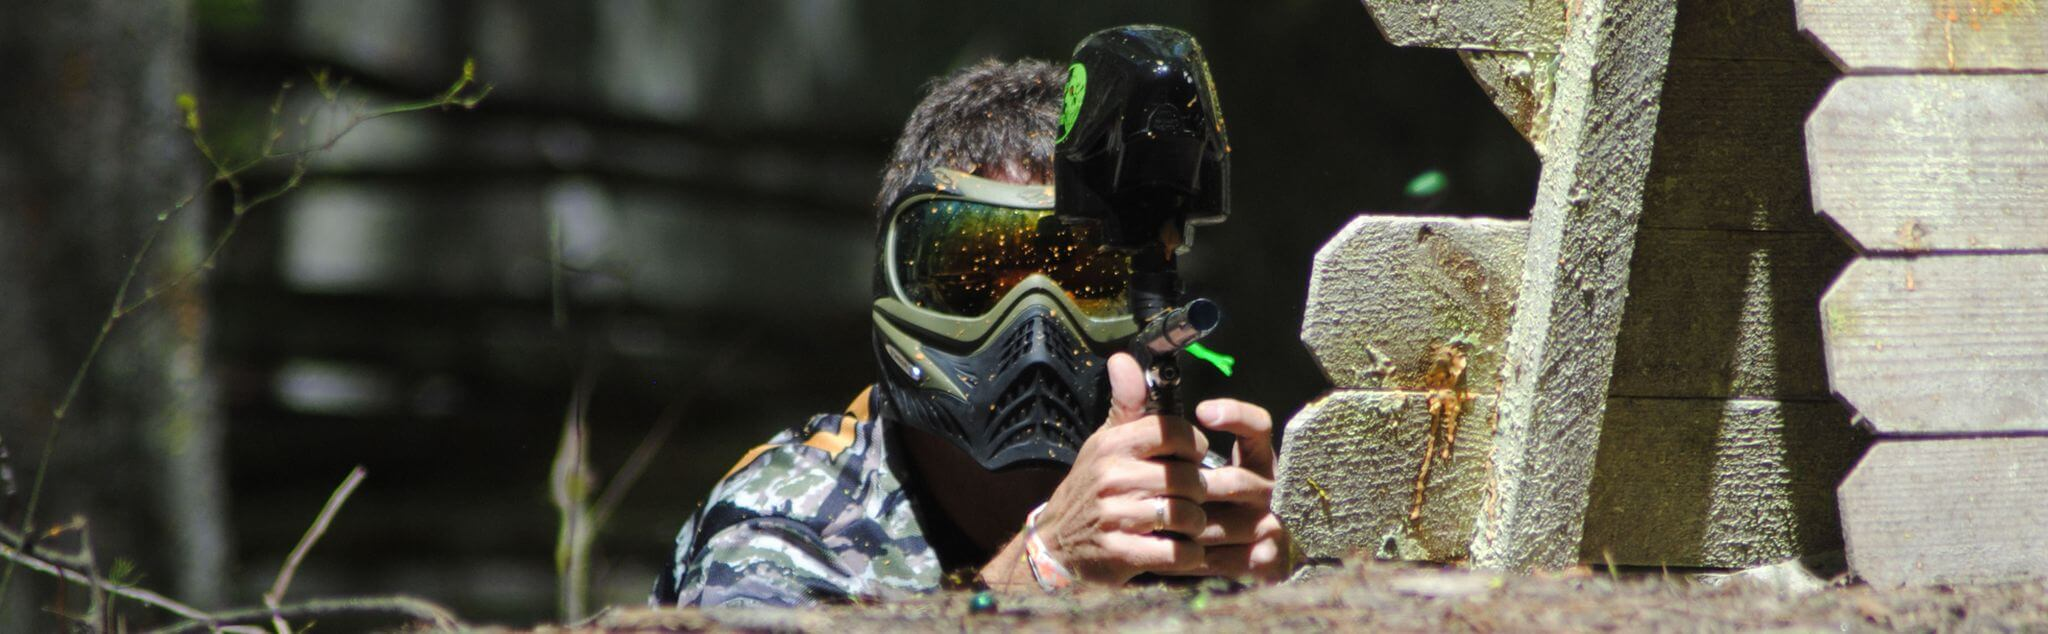 Paintball dans Doubs